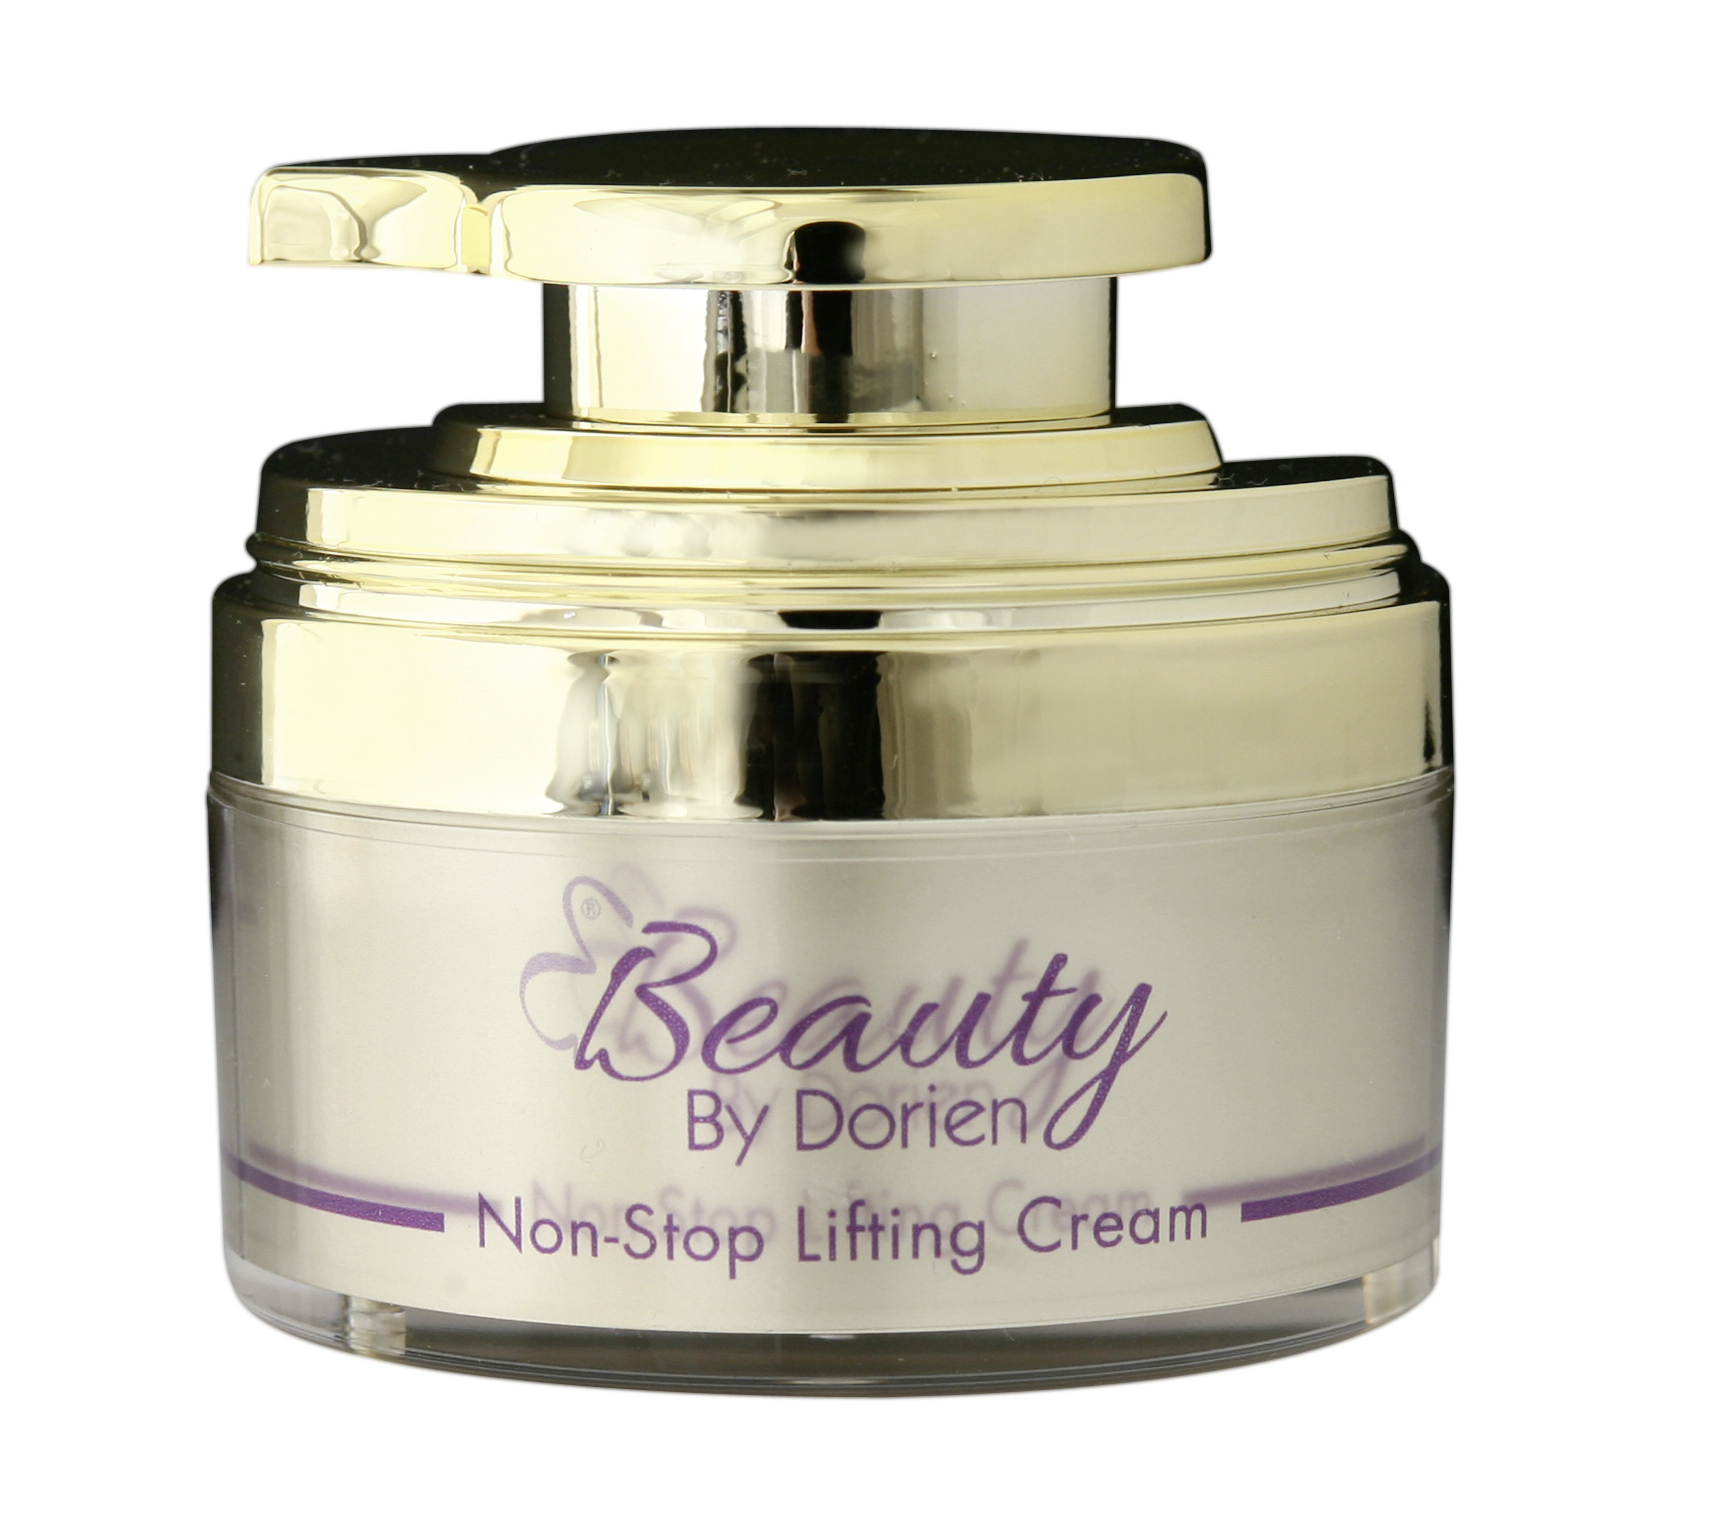 Non-stop Lifting Cream Liftende anti-ageing crème